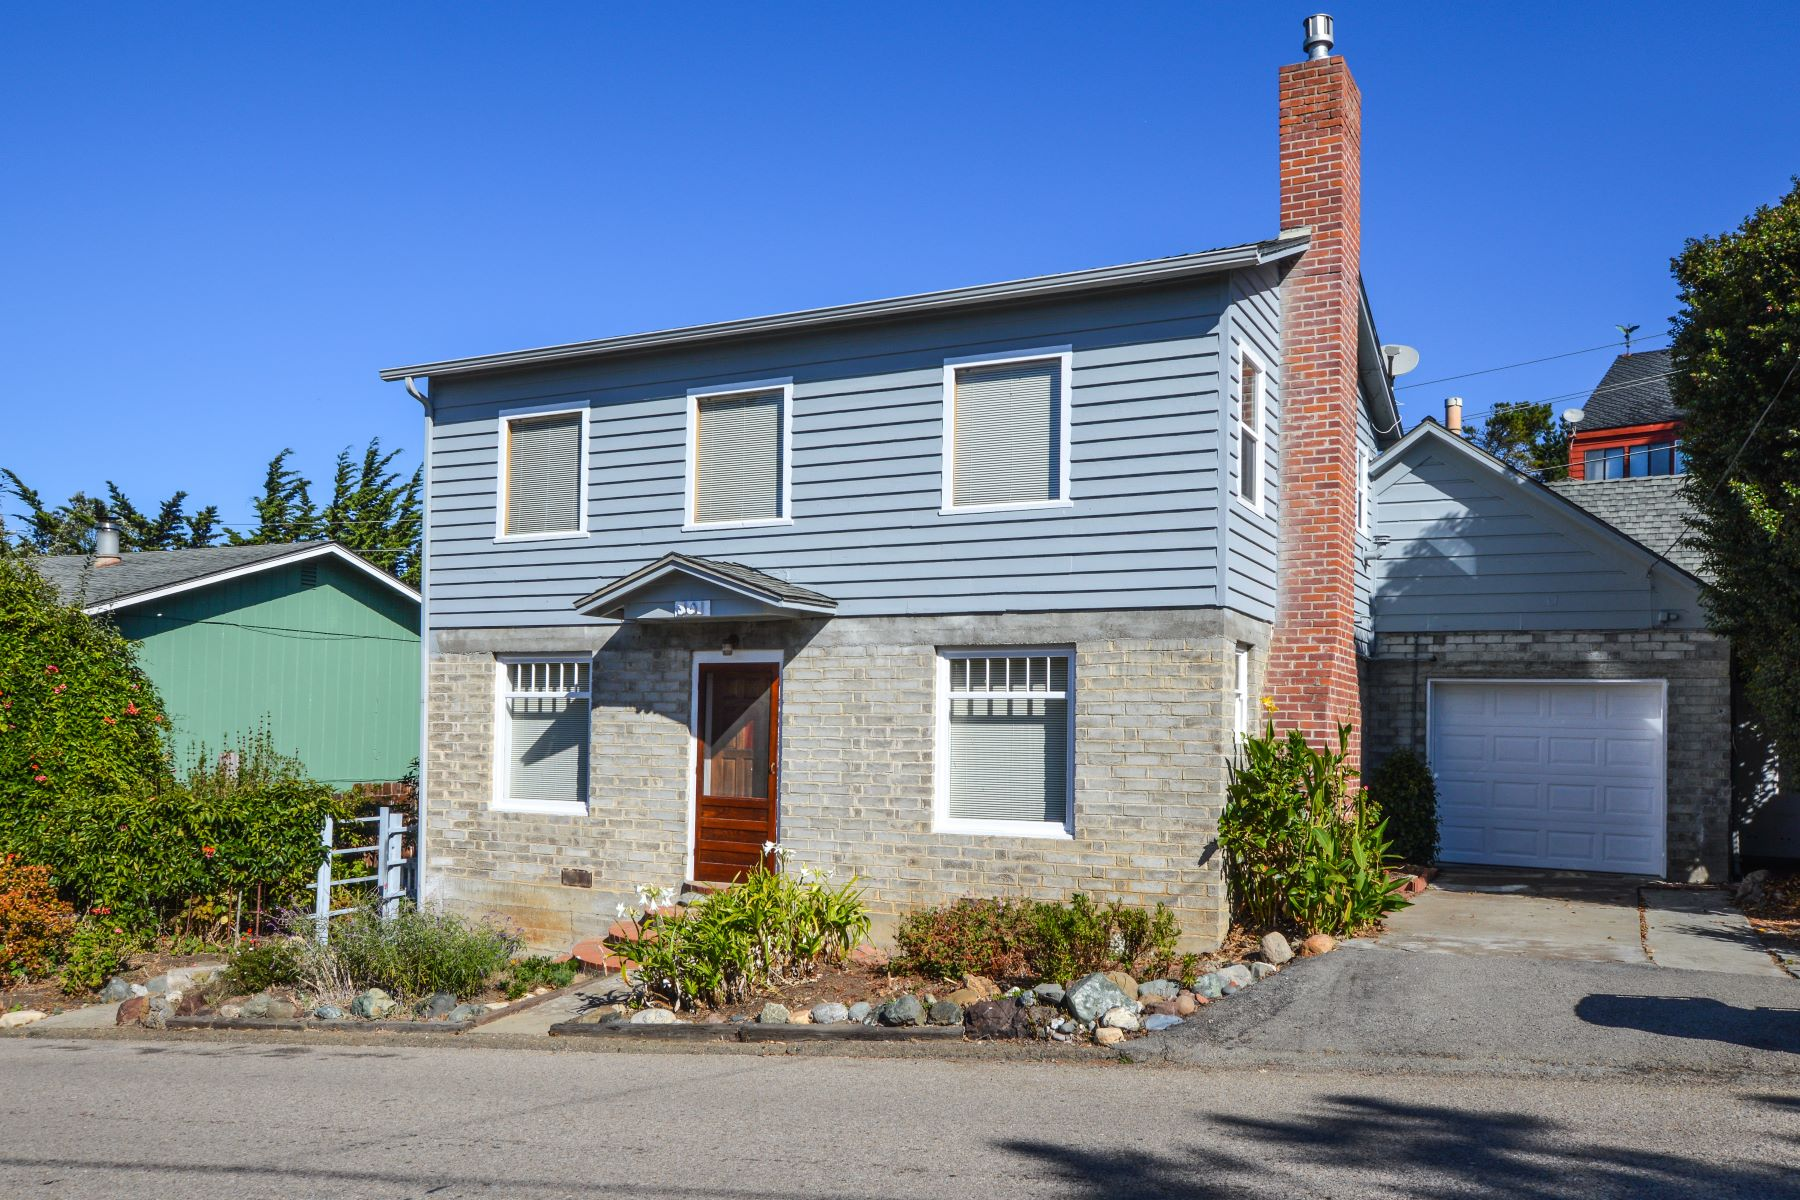 Single Family Homes for Sale at Cambria of Yesteryear 361 Weymouth Cambria, California 93428 United States